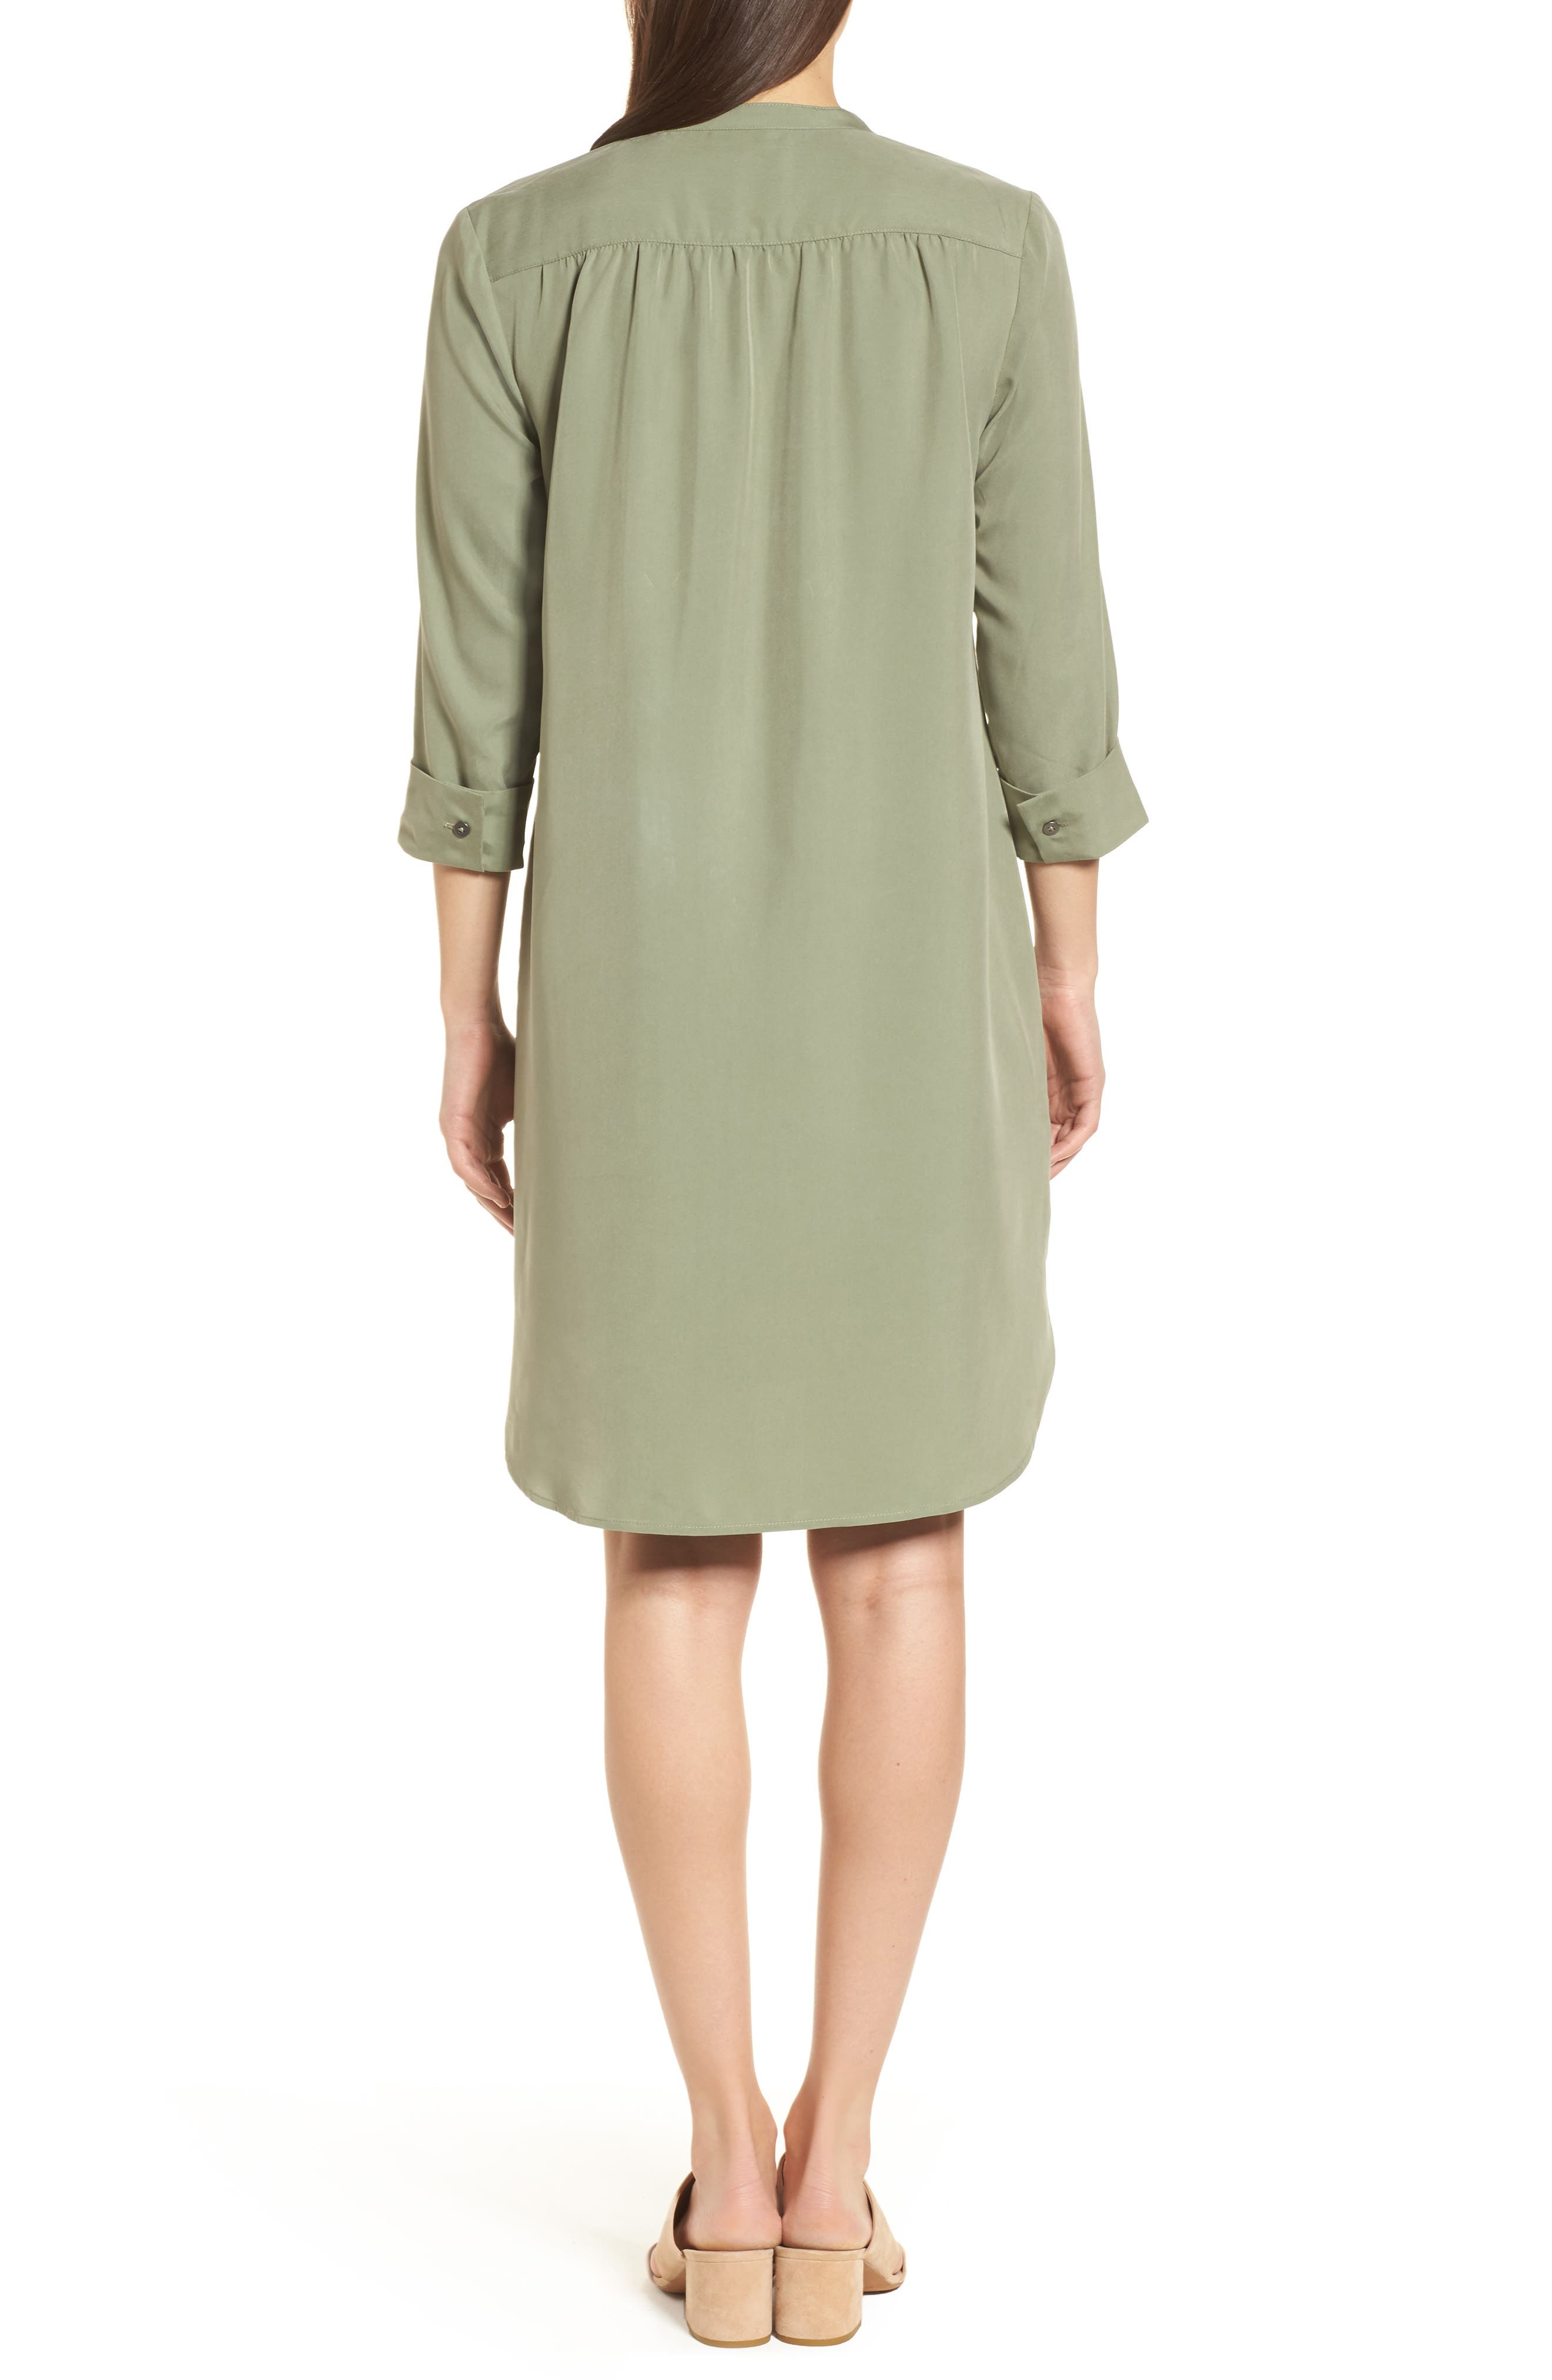 Wanderlust Shirtdress,                             Alternate thumbnail 2, color,                             Spring Moss